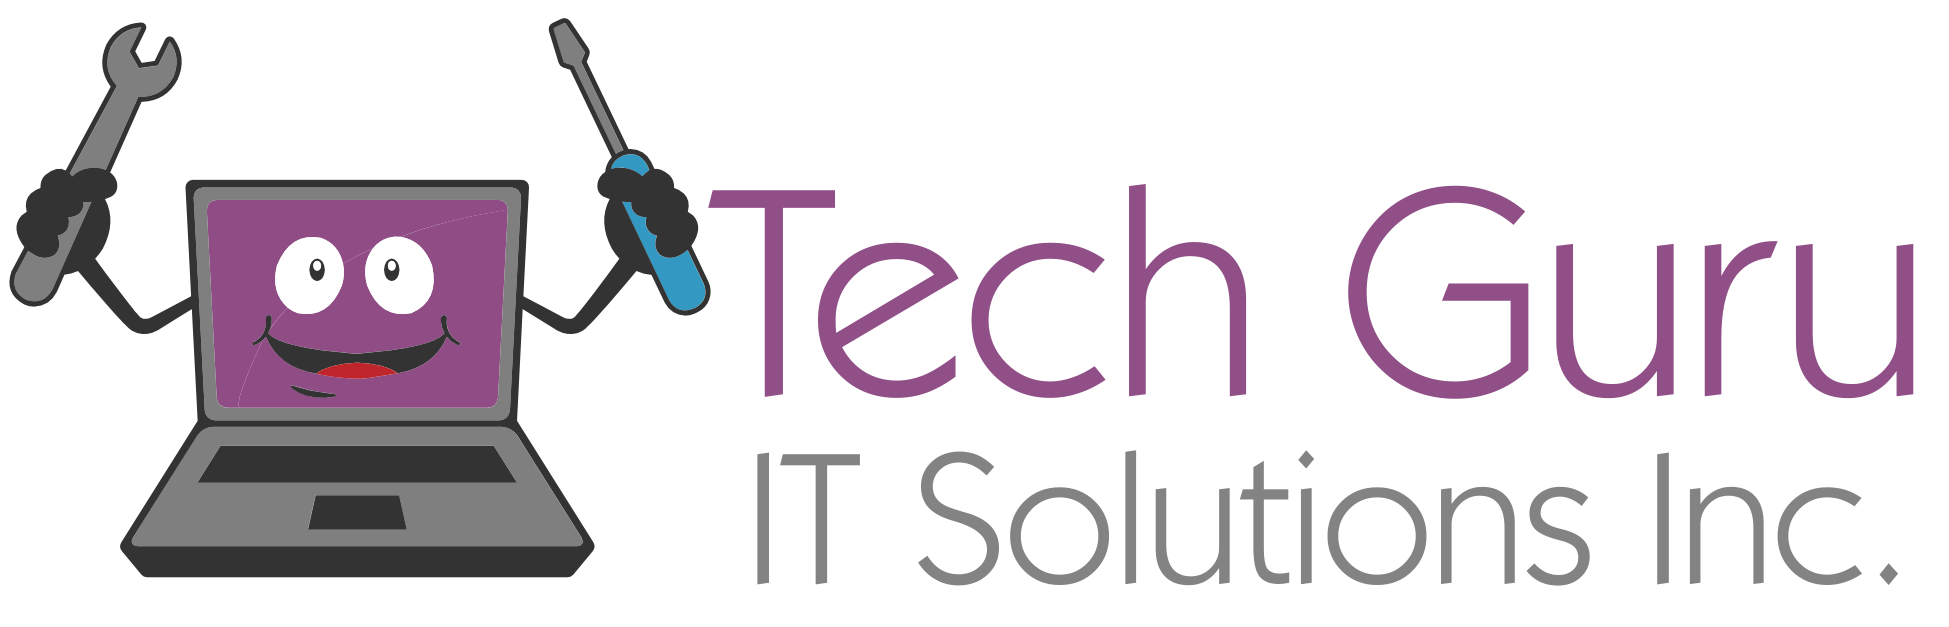 Tech Guru IT Solutions